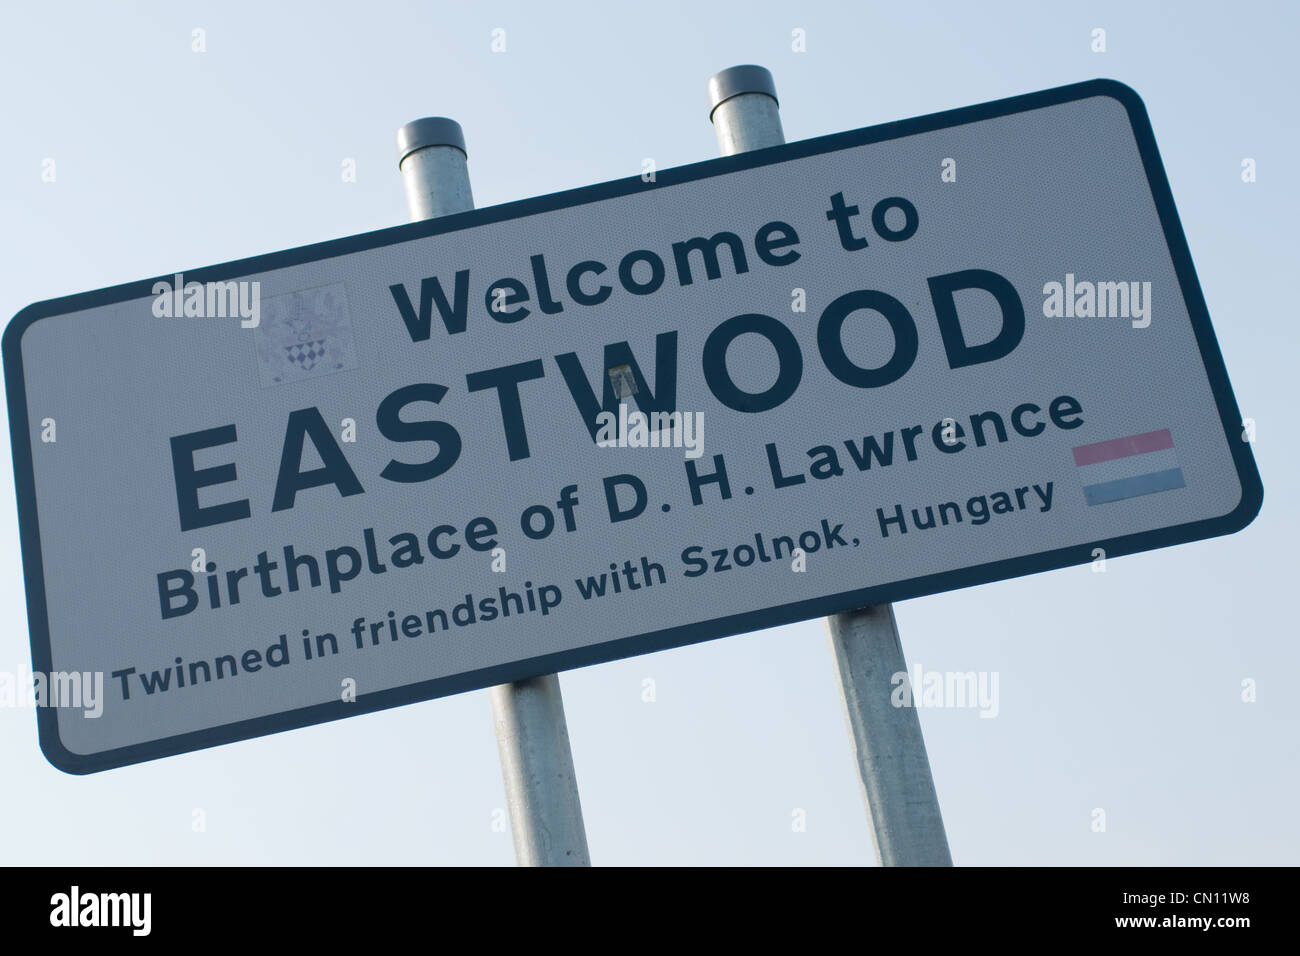 The town sign of Eastwood in Nottinghamshire - Stock Image